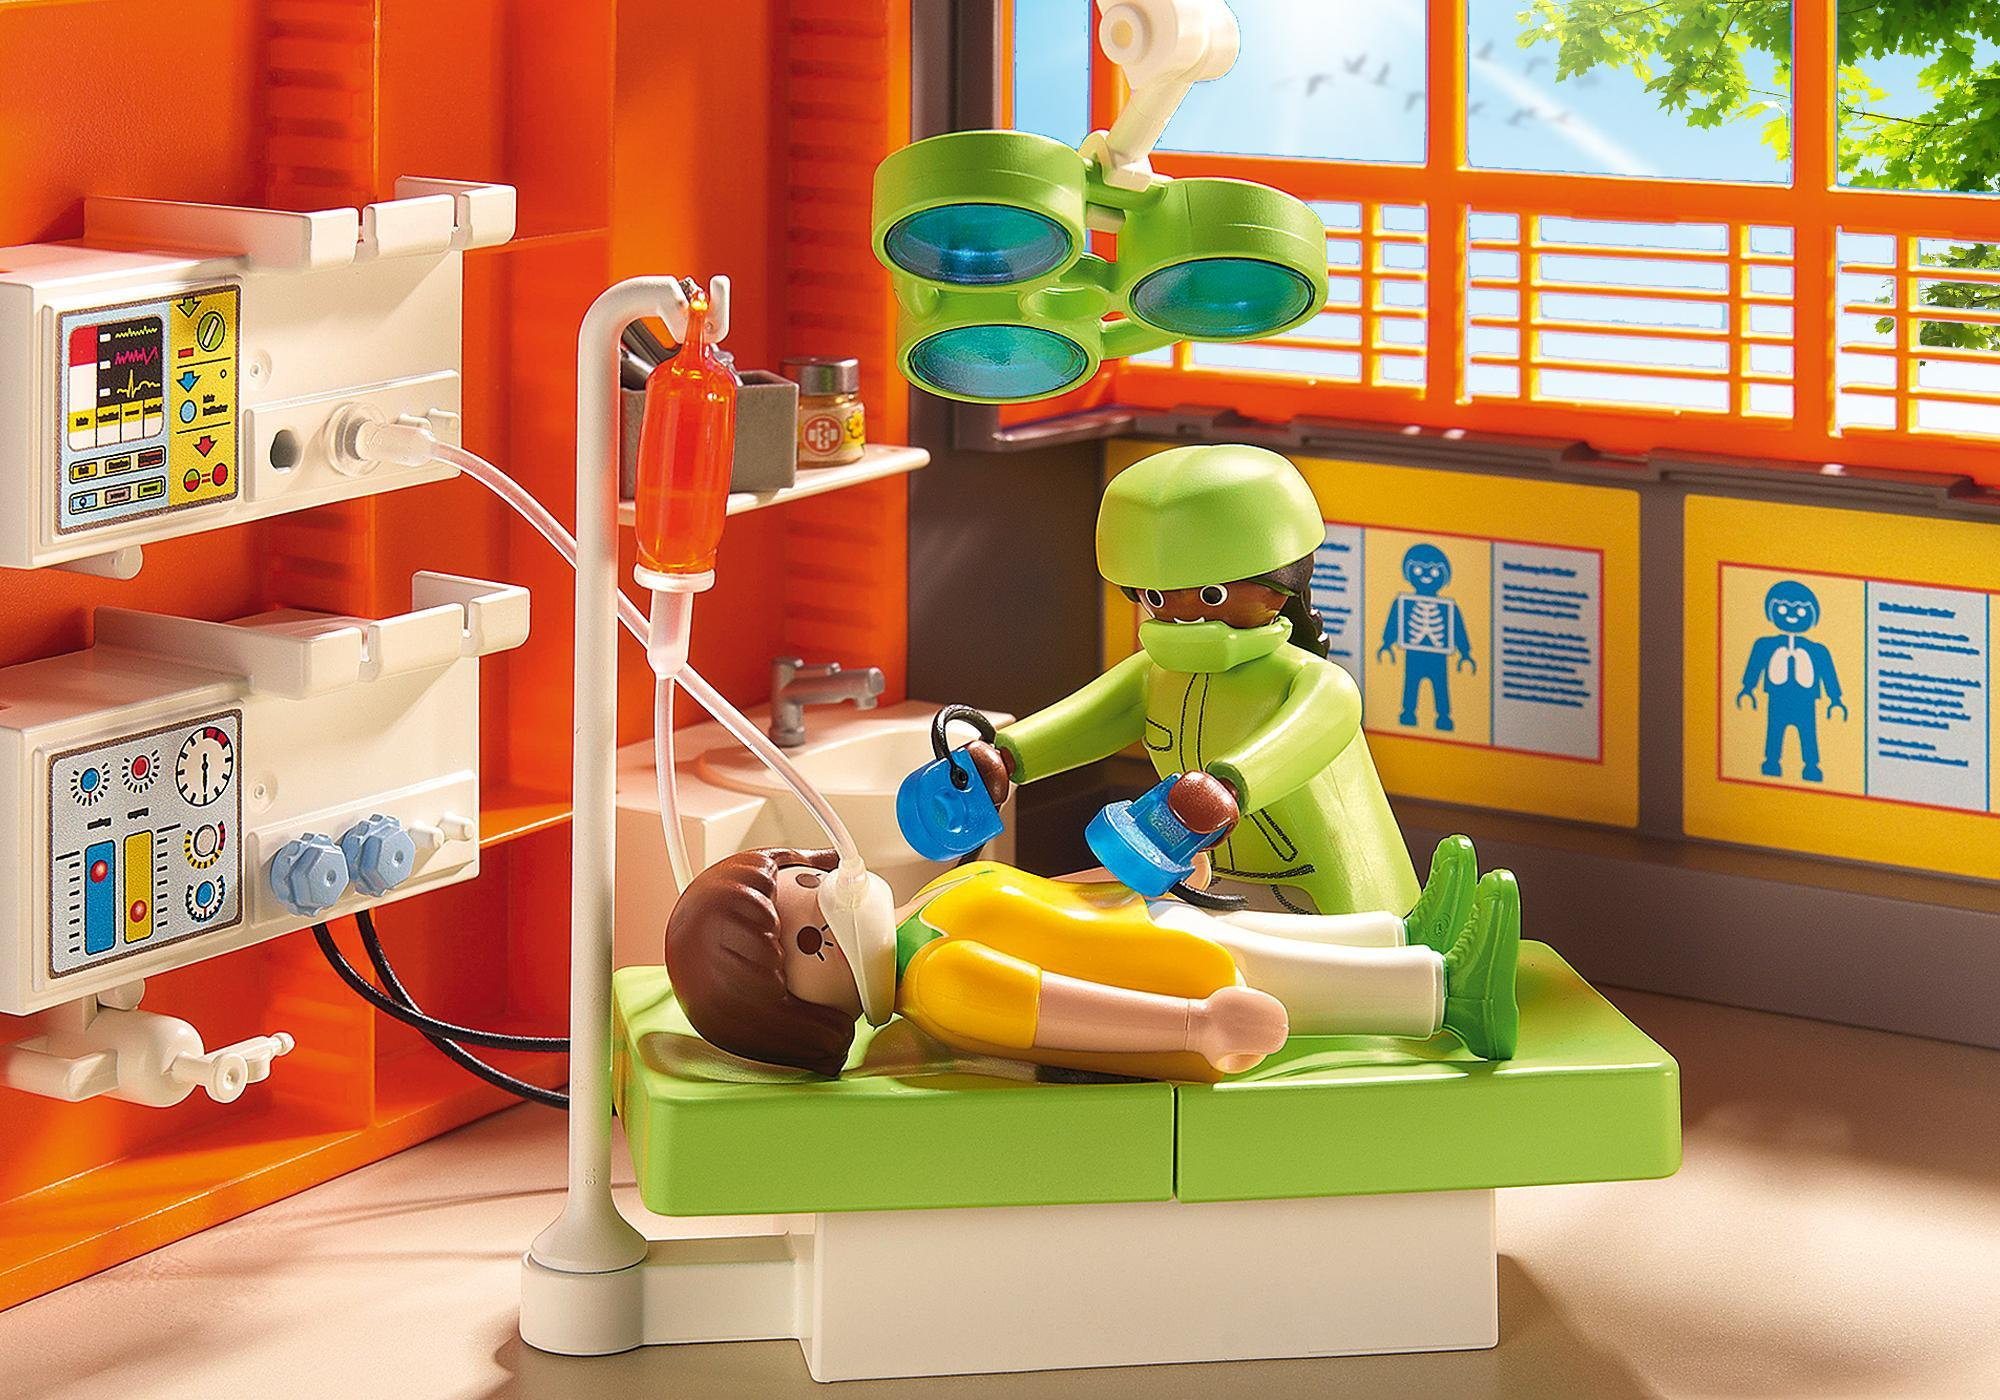 http://media.playmobil.com/i/playmobil/6657_product_extra1/Furnished Children's Hospital